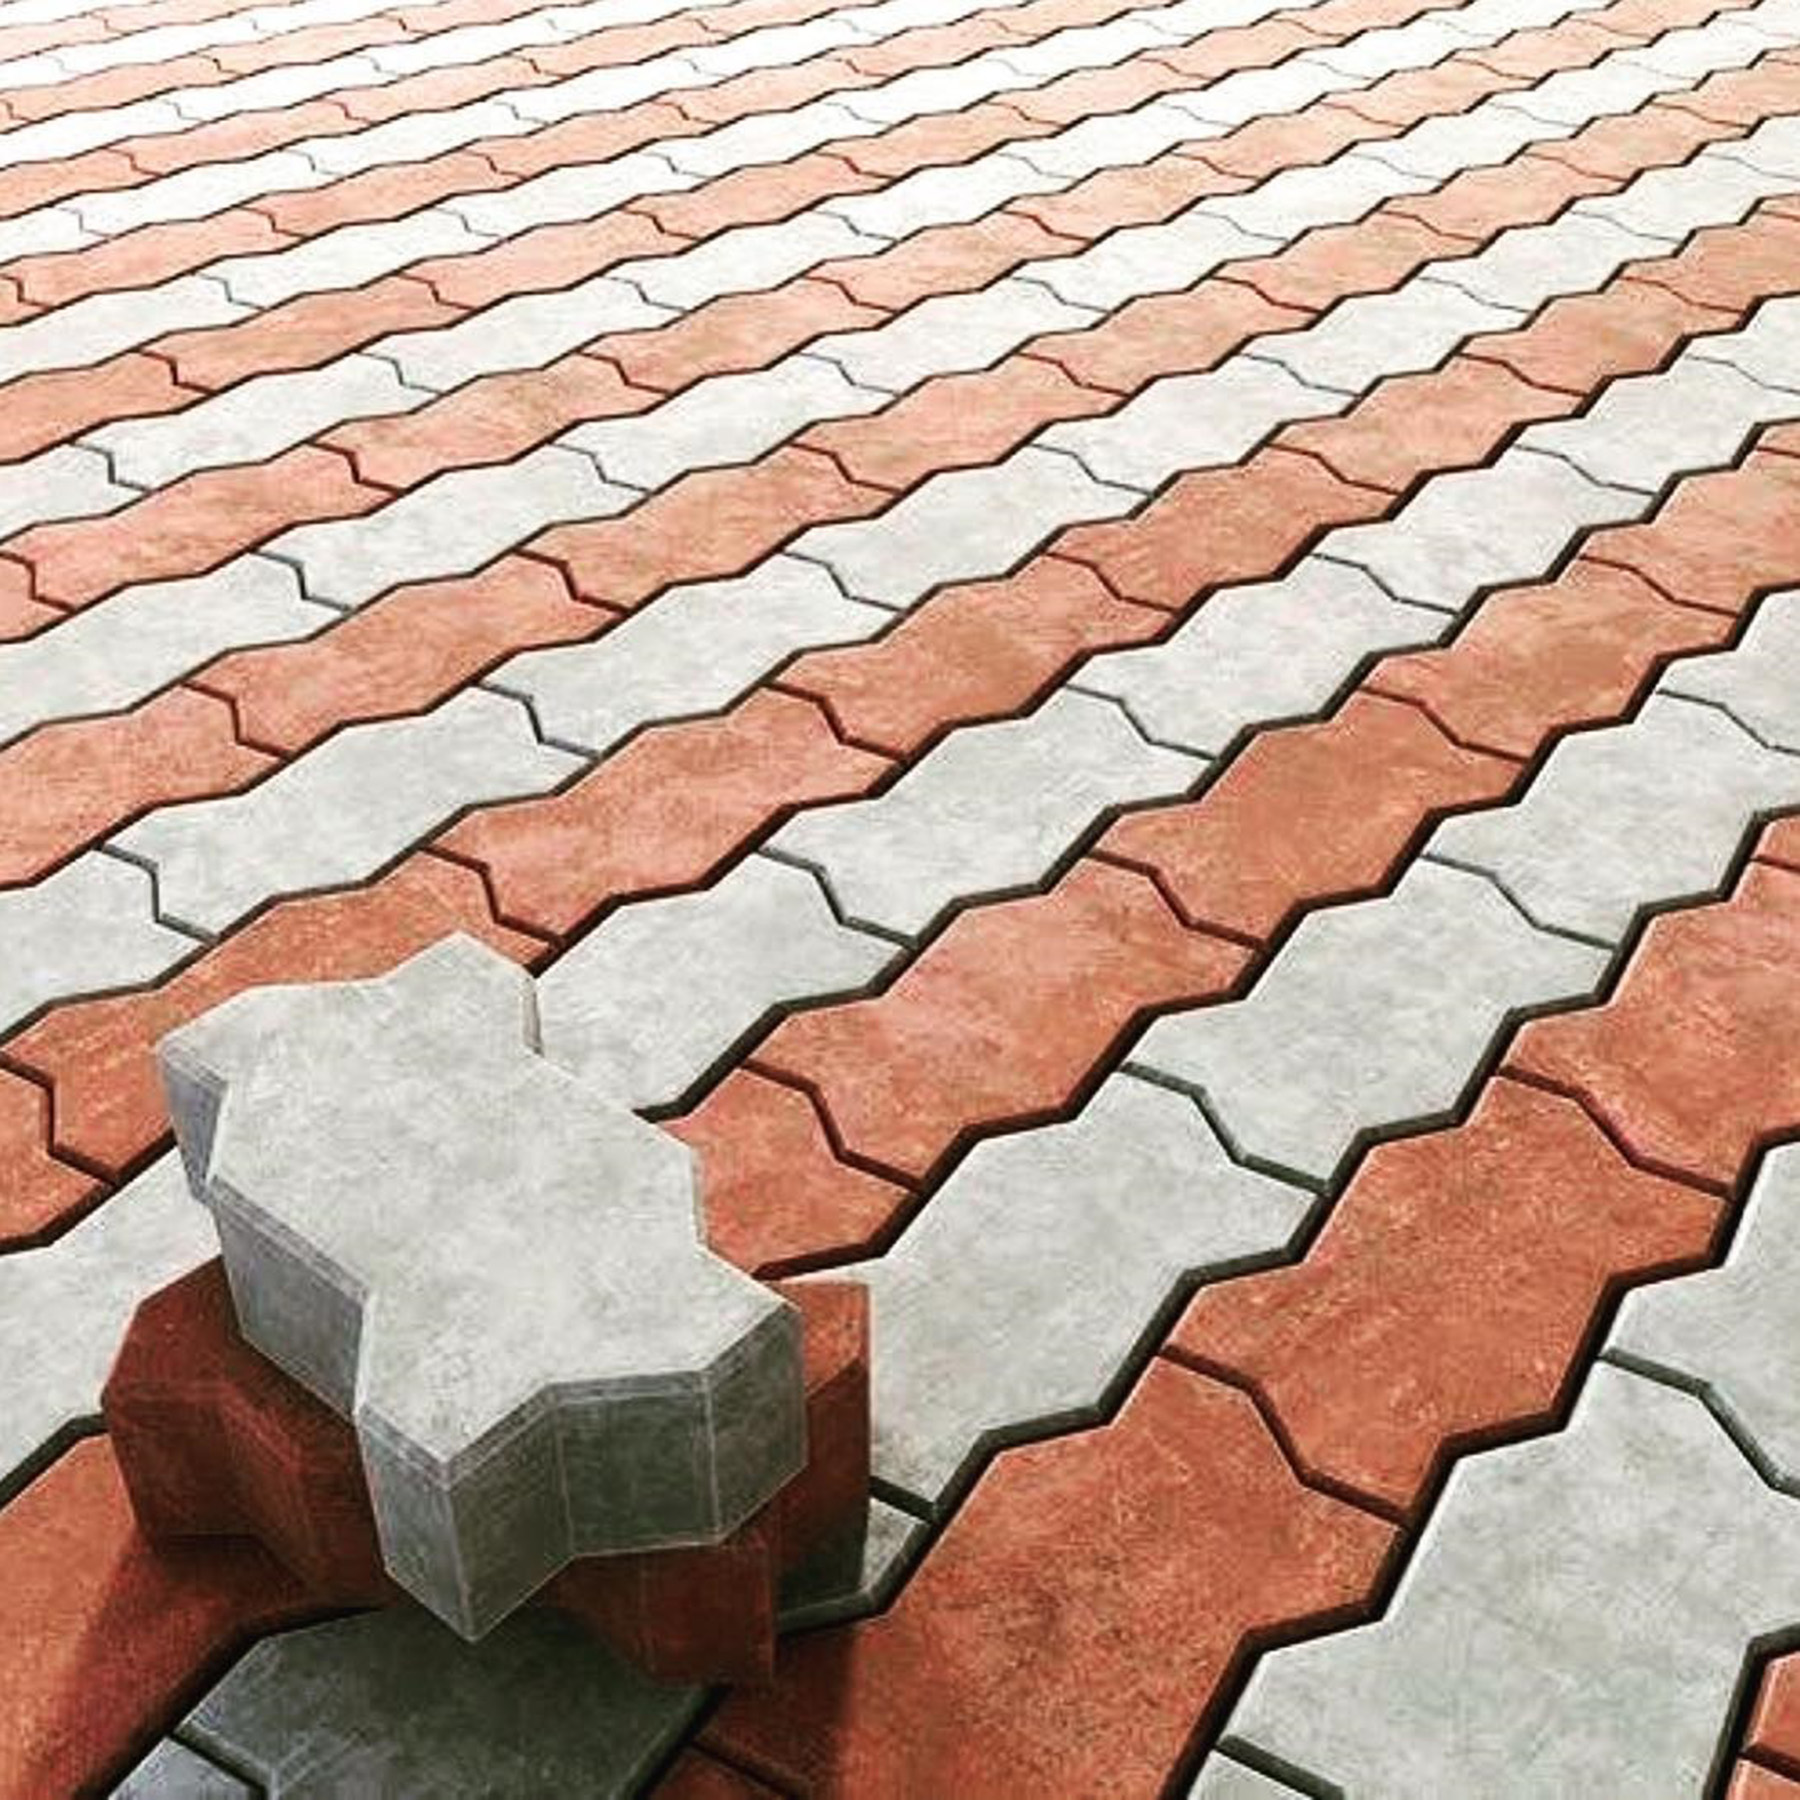 Patio Pavers Concrete Molds Silicone Stepping Stone Mold Cement Concrete Brick Molds